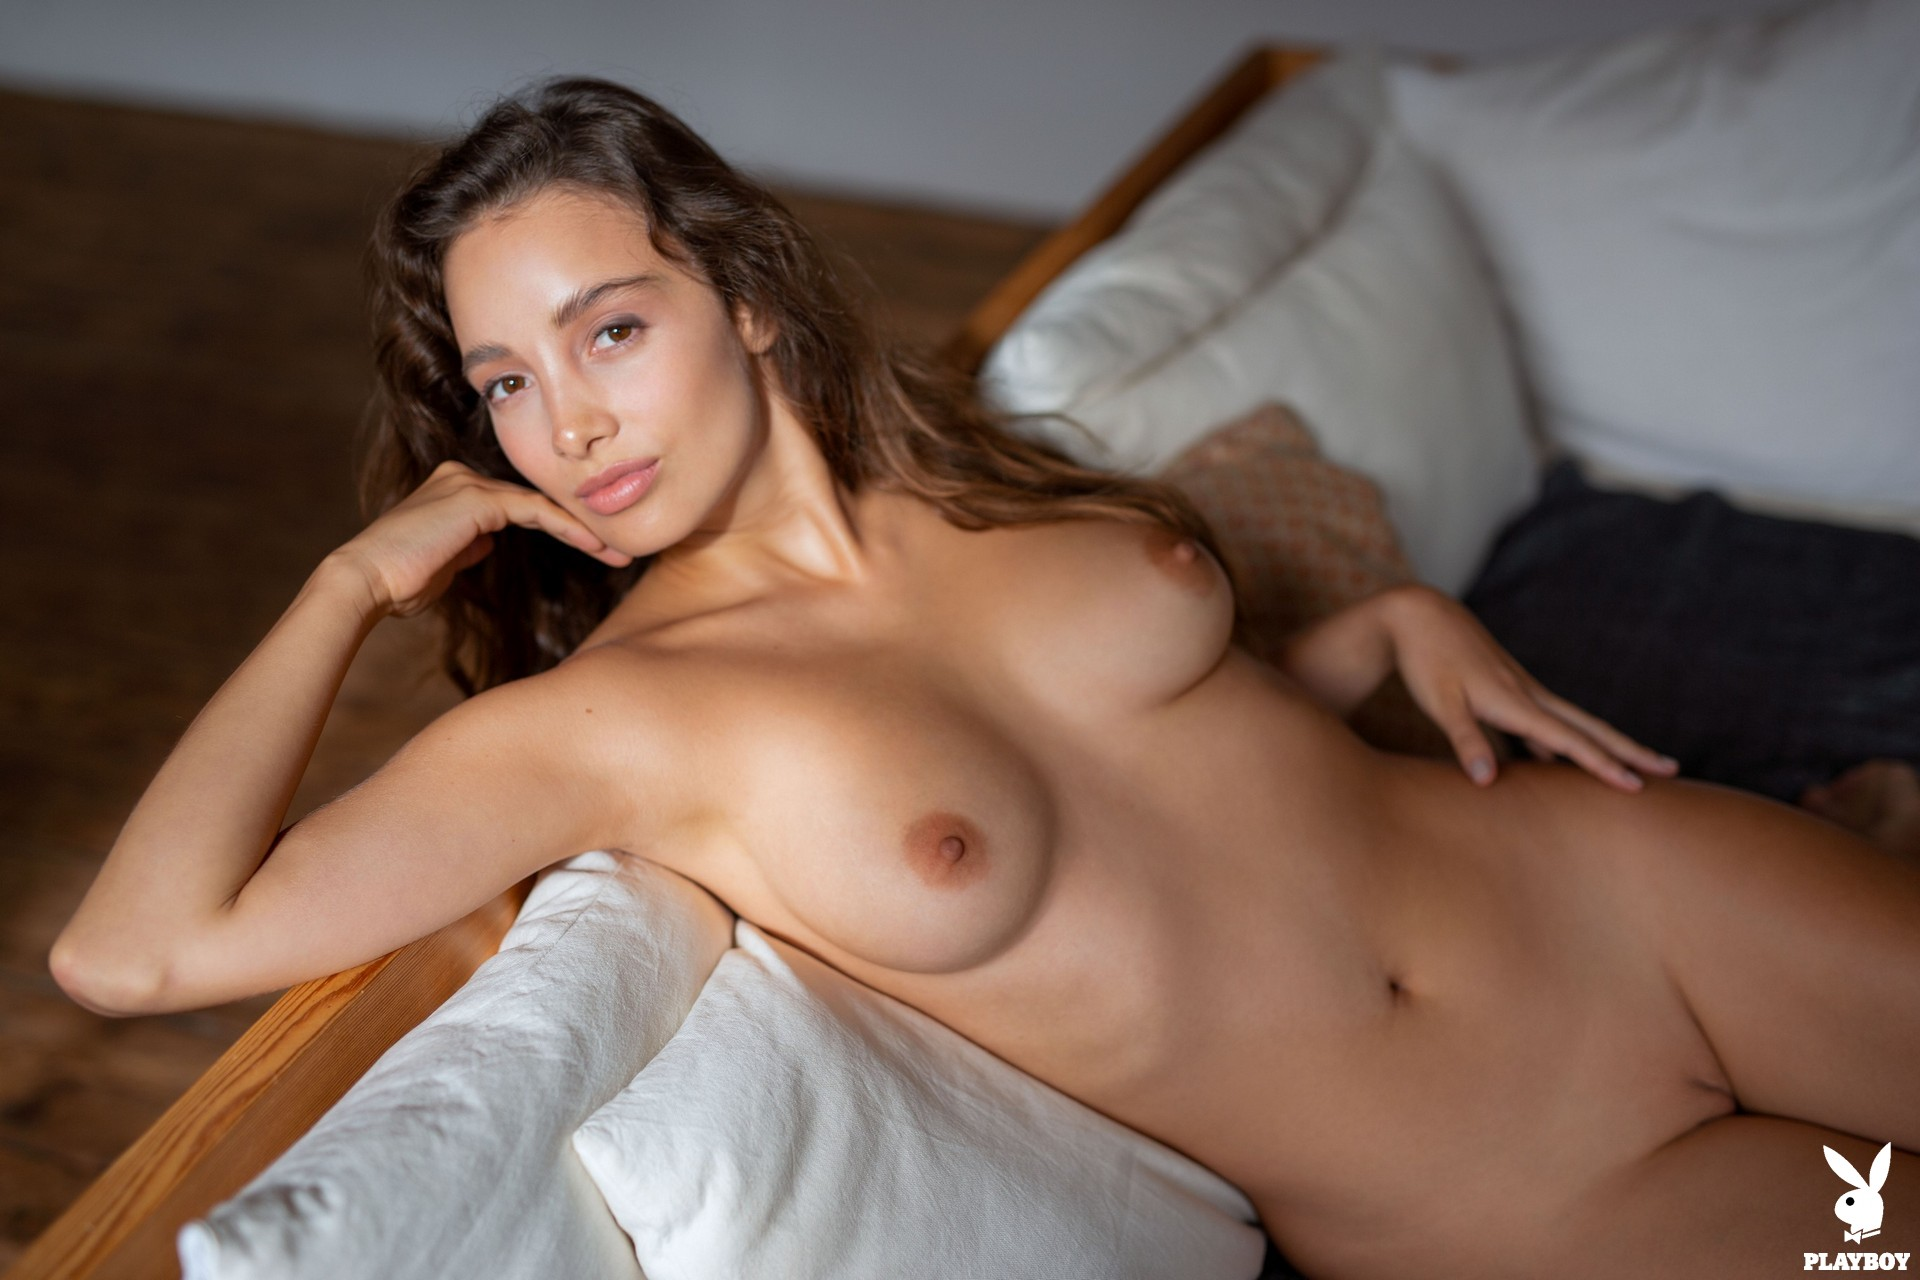 Calypso Muse in Sweet Comforts - Playboy Plus 31